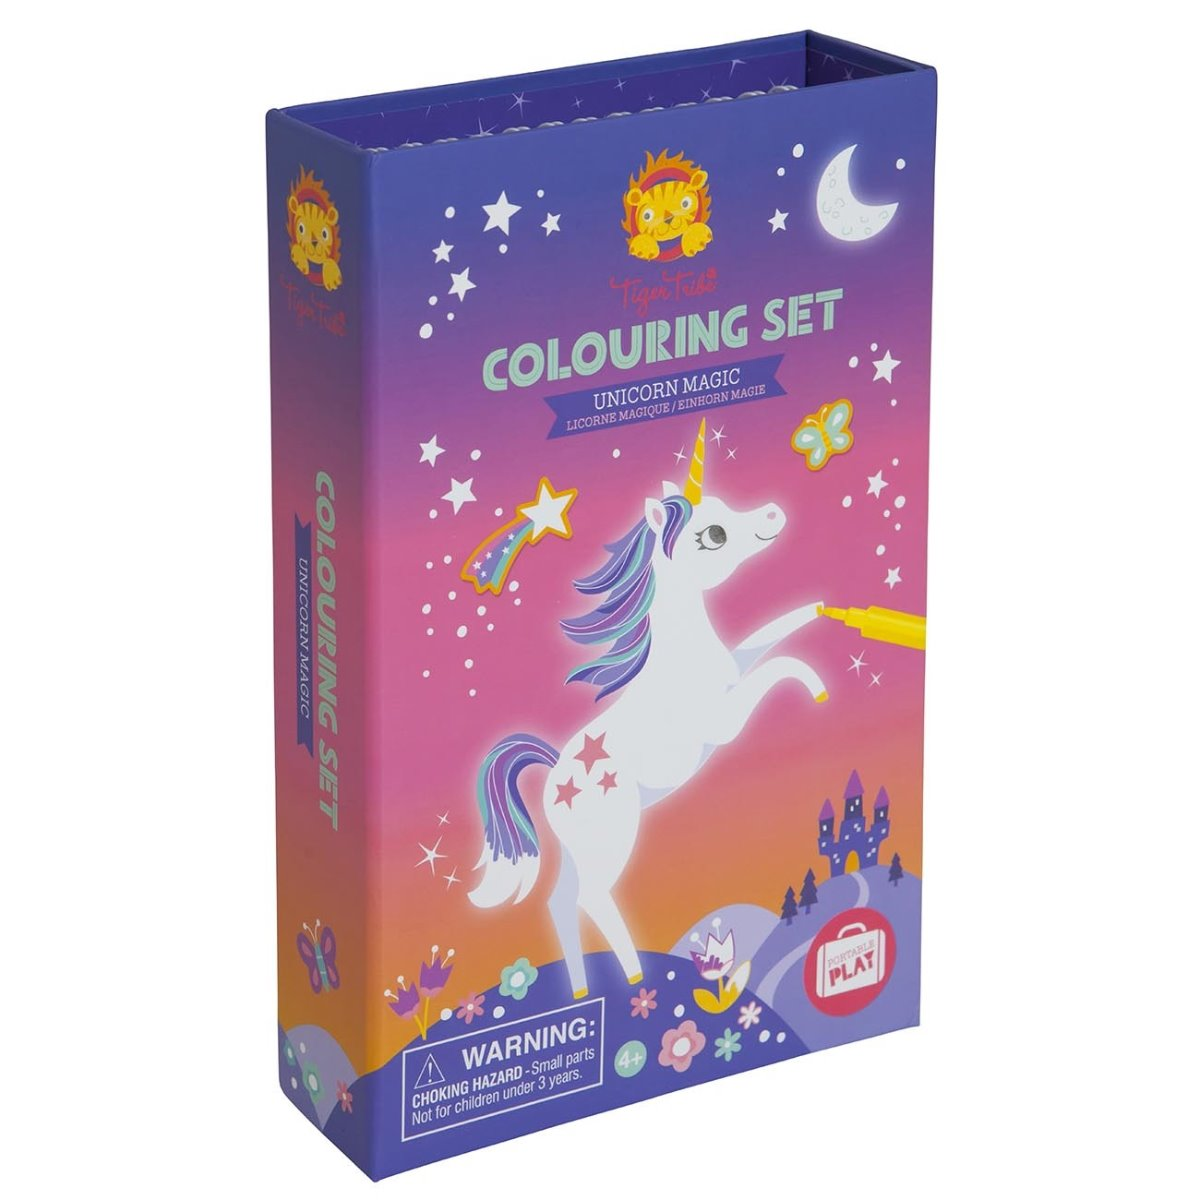 Tiger Tribe - Colouring Set Unicorn Magic